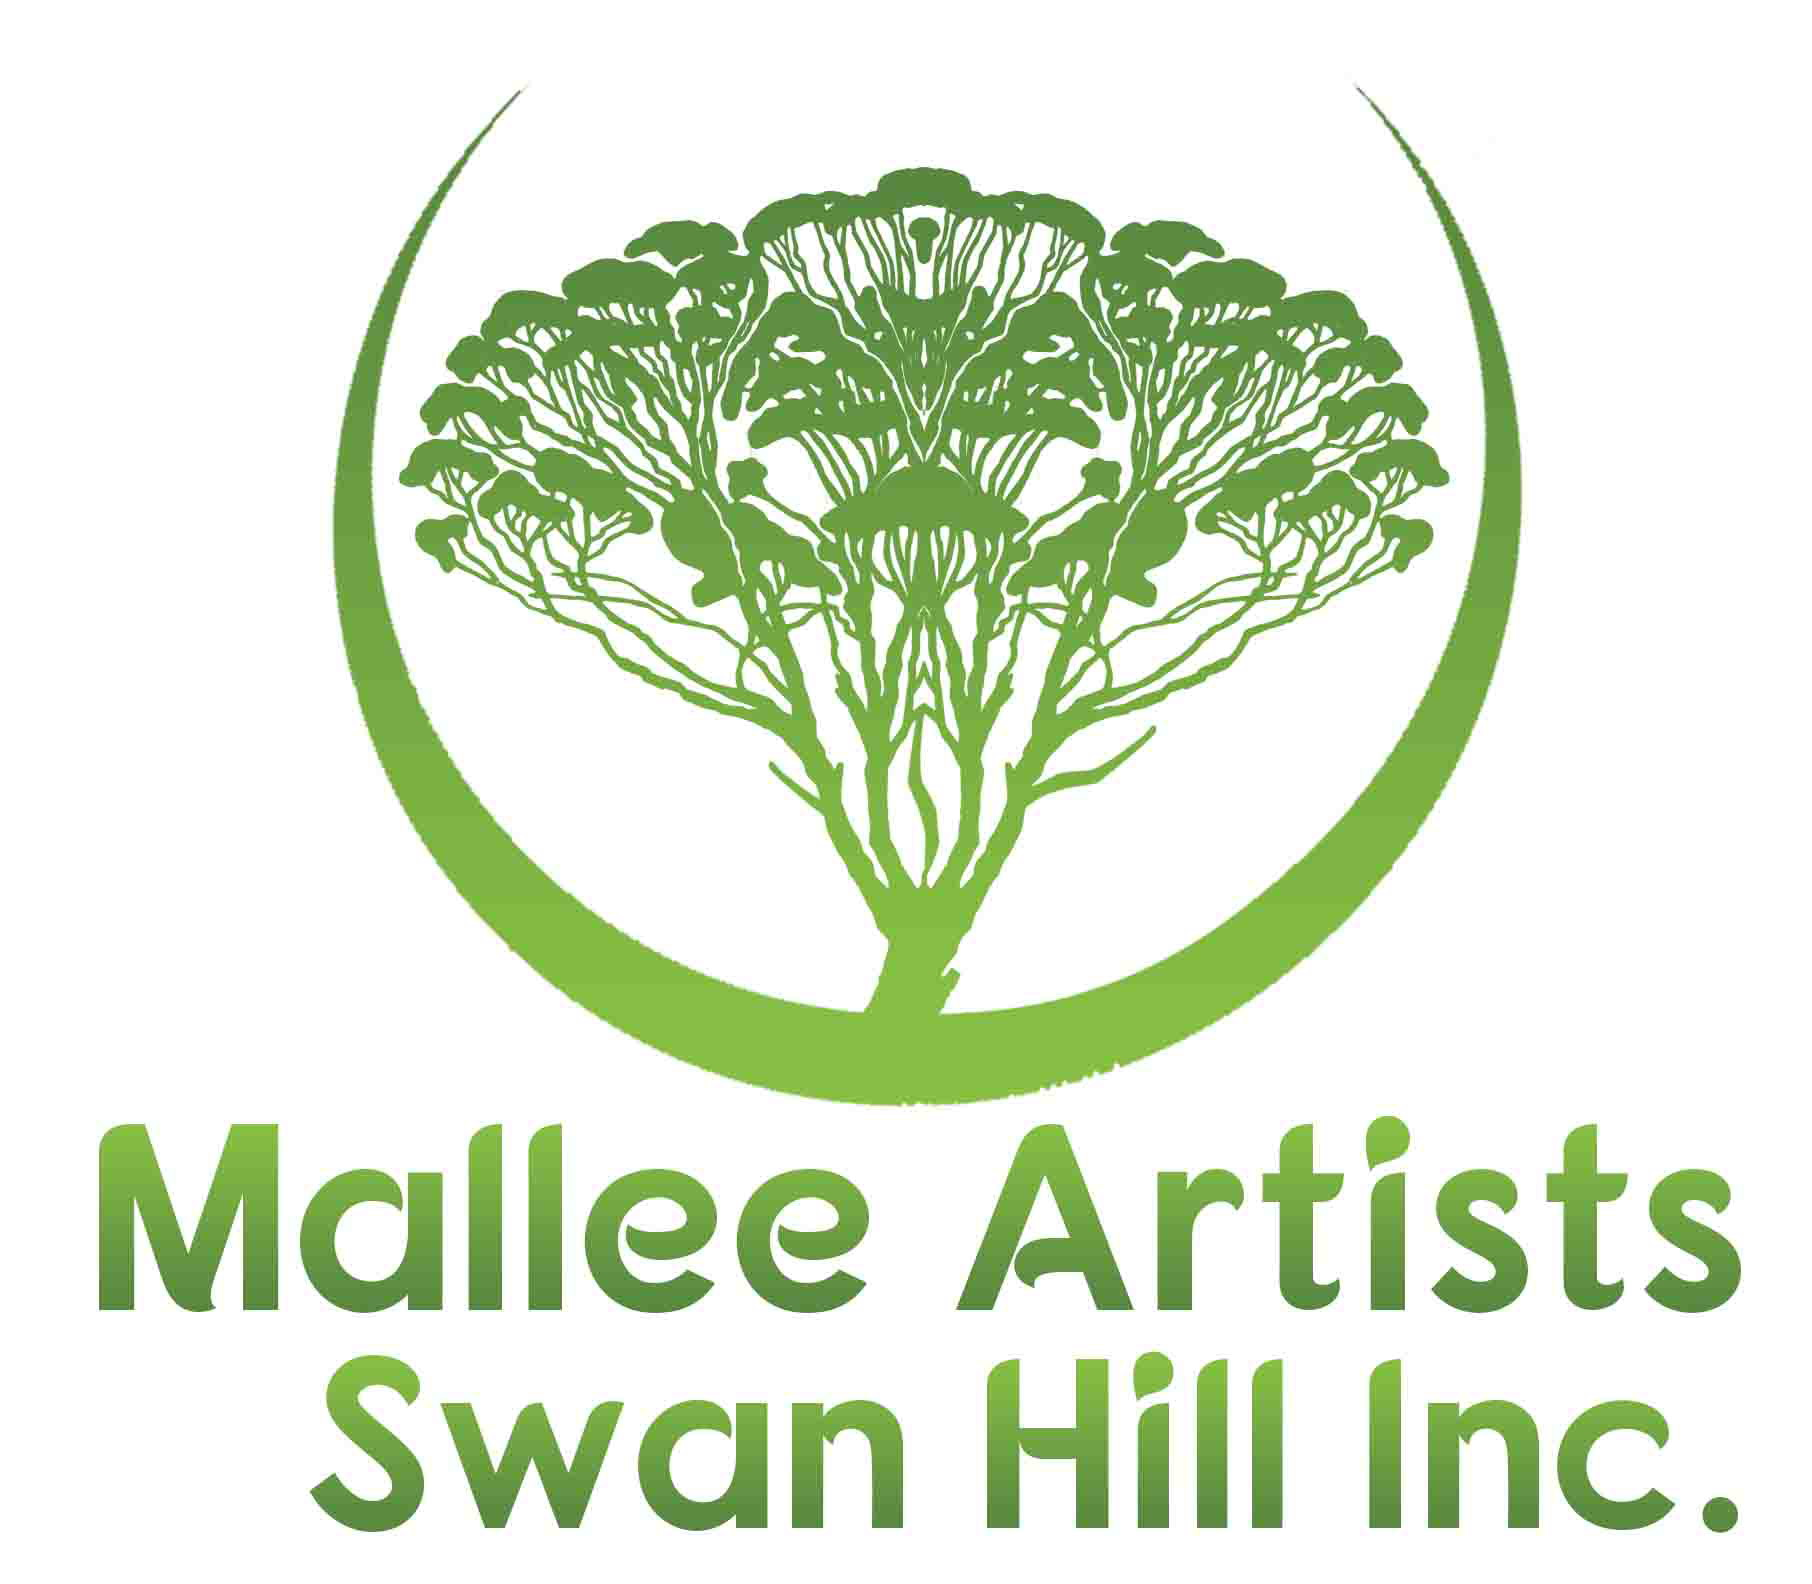 Mallee Artists Swan Hill Inc.